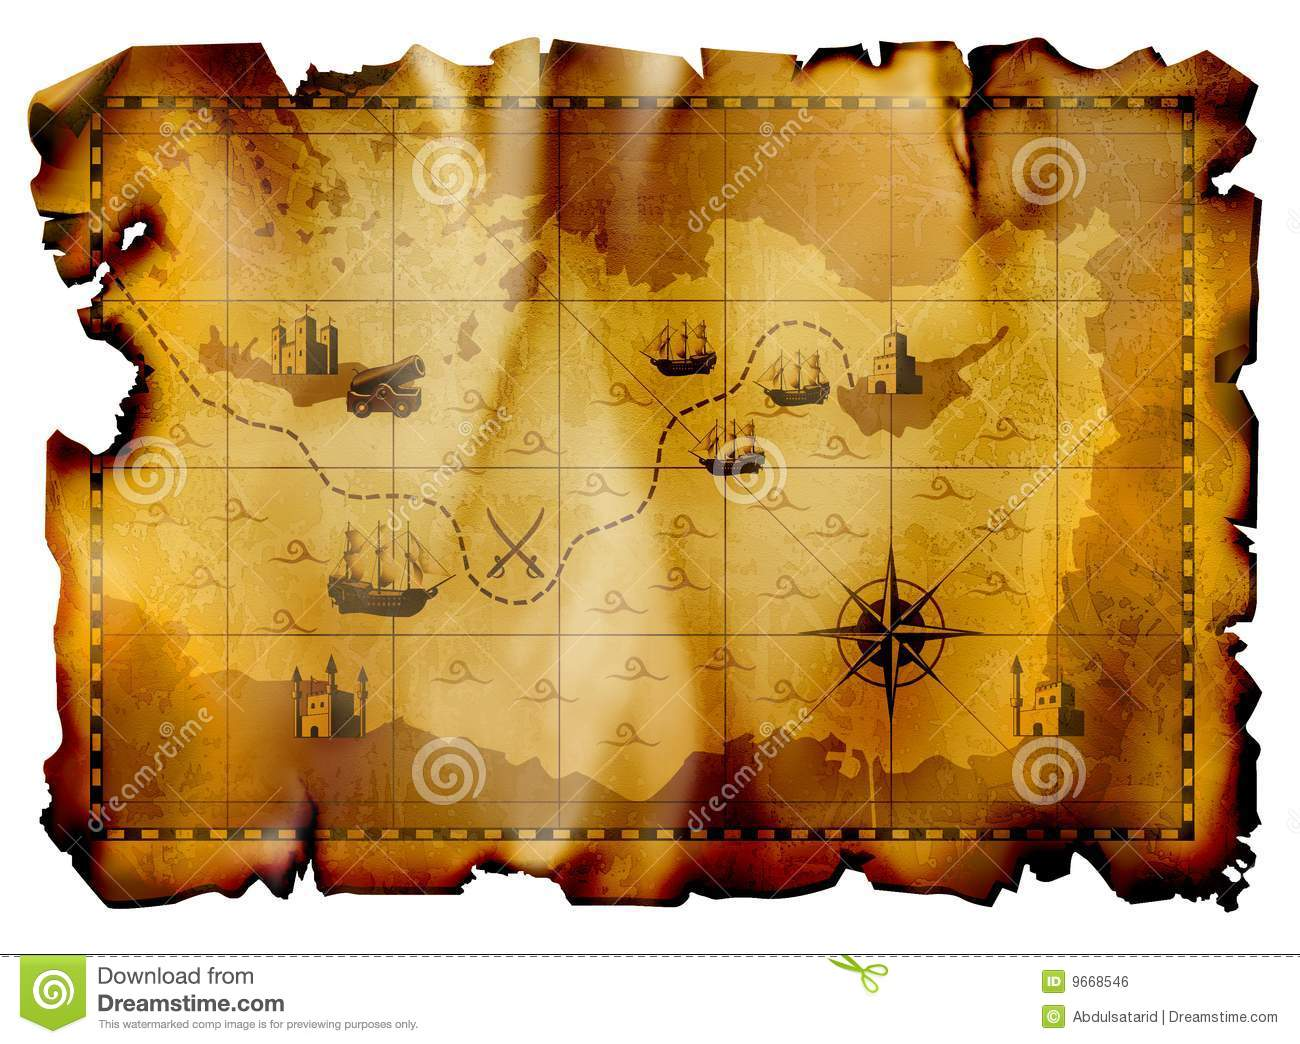 pirate map royalty free stock image image 9668546 treasure map background vector free download treasure map vector image